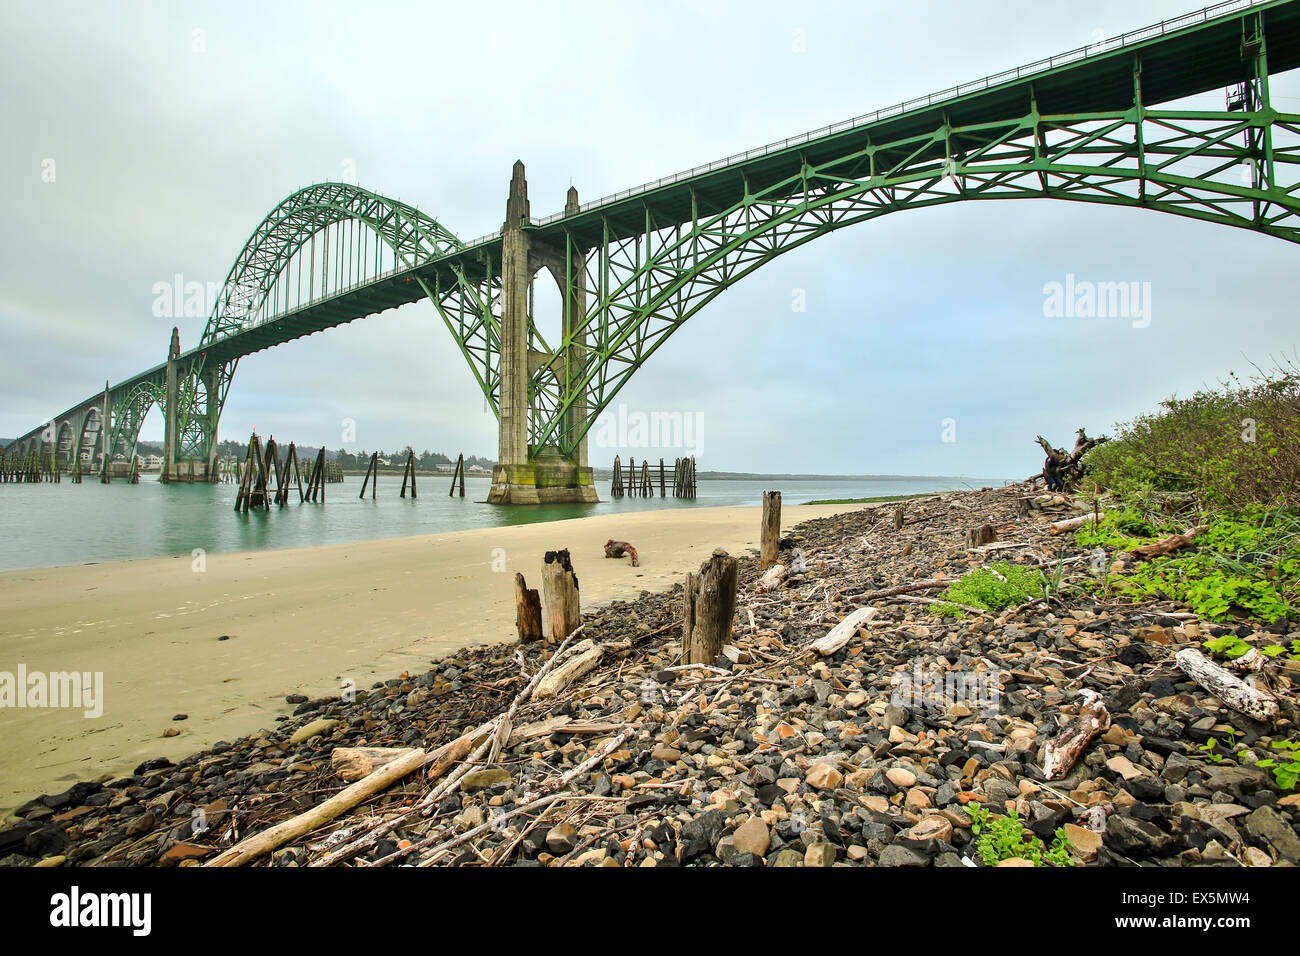 Wooden pylons, gravel and Yaquina Bay Bridge, Newport, Oregon USA - Stock Image